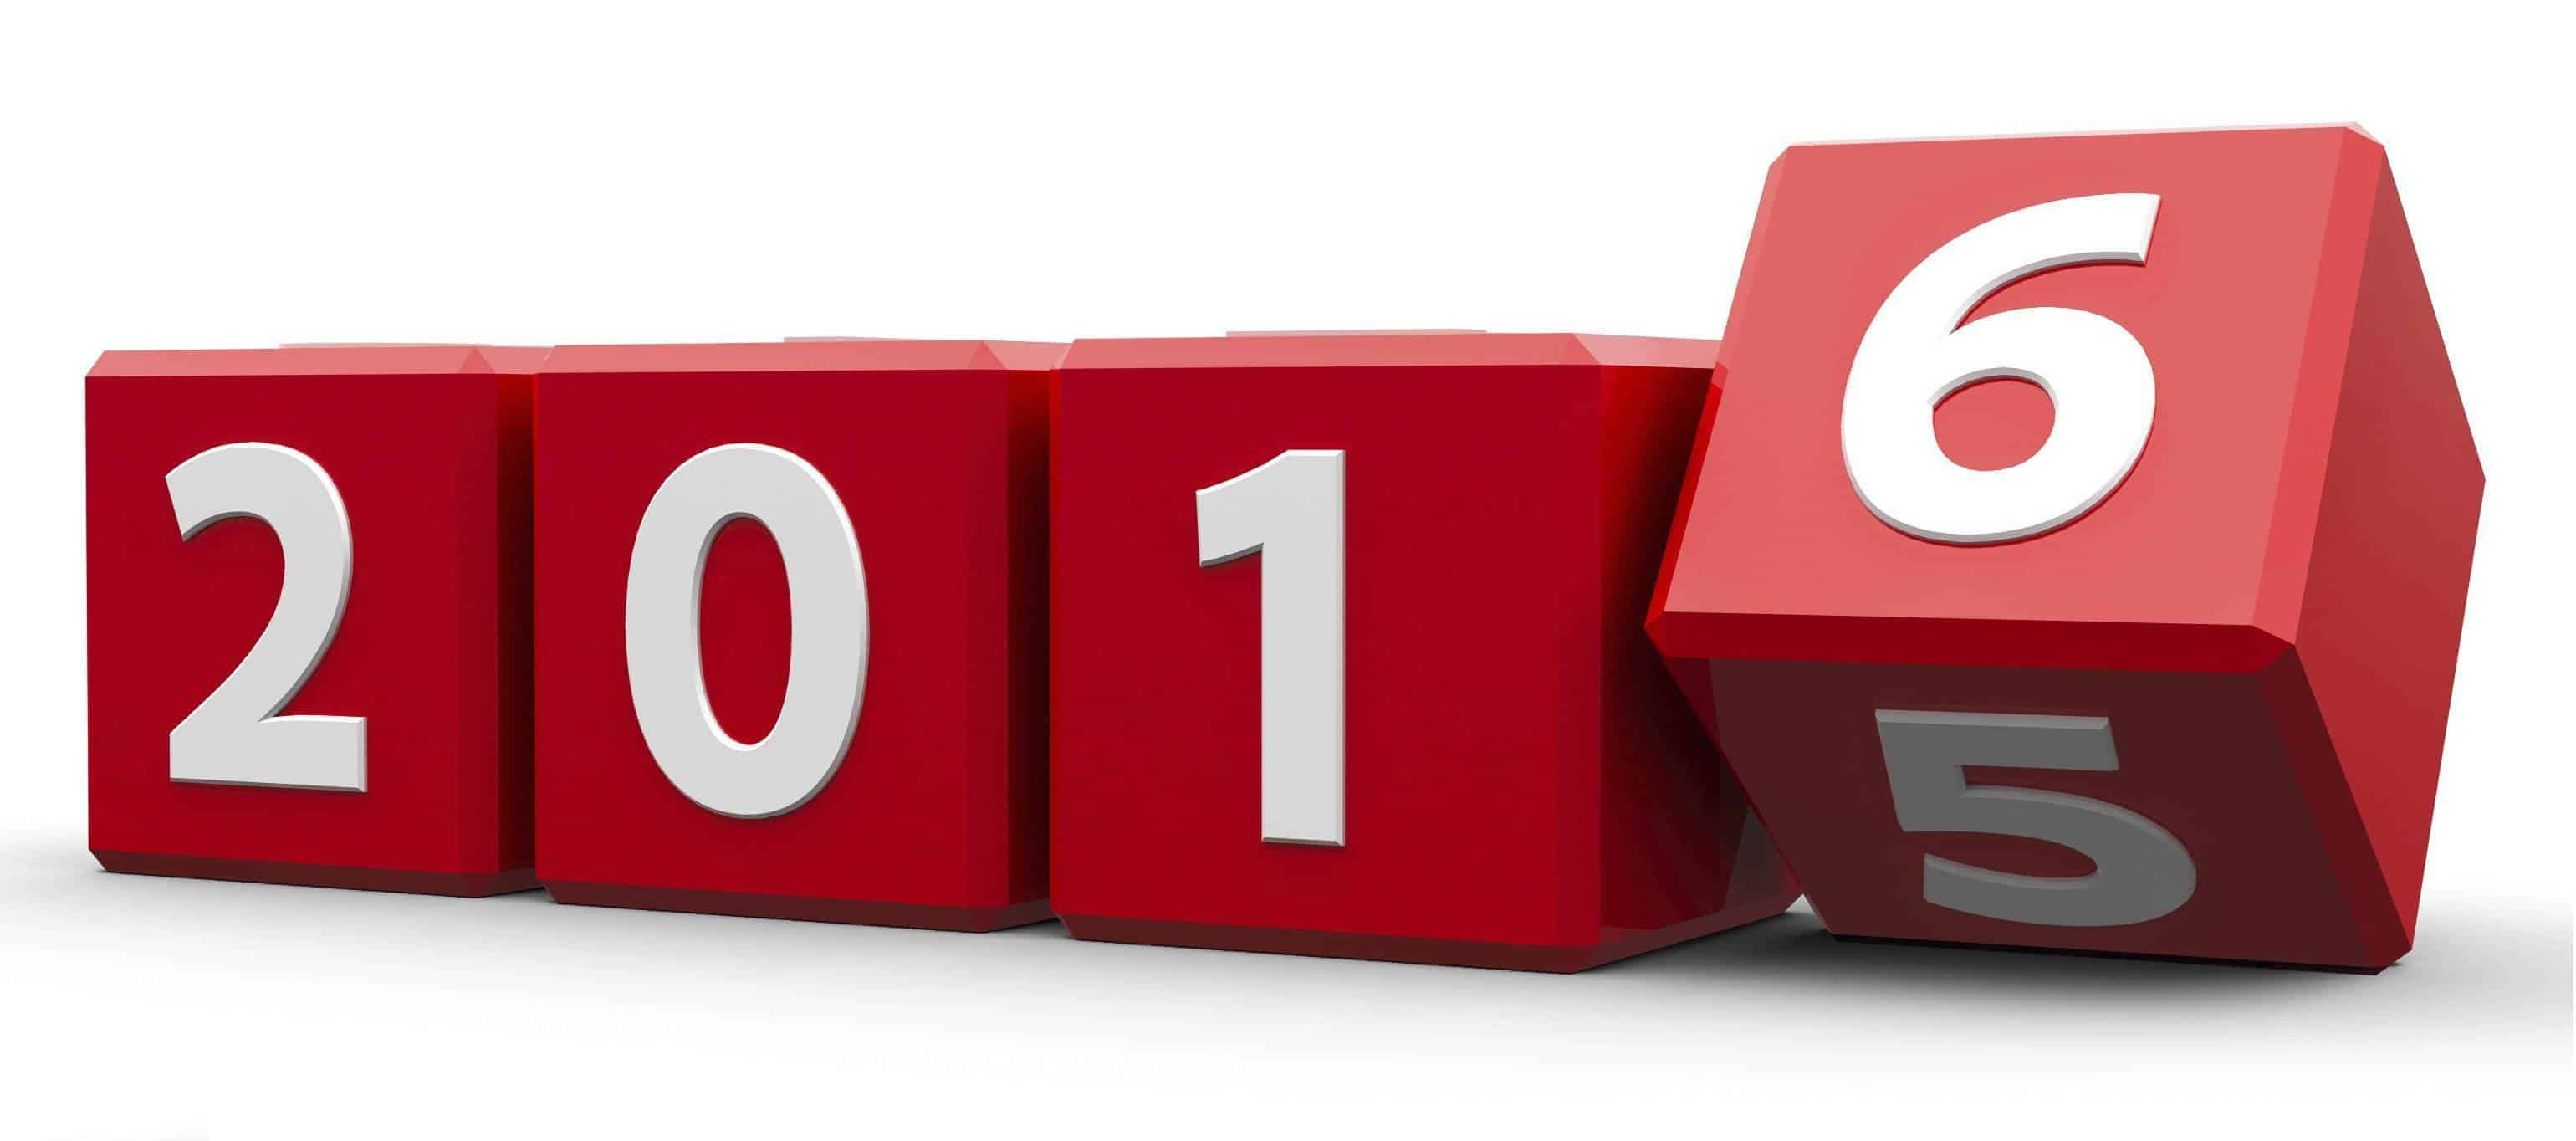 Red cubes with 2015-2016 change on a white table represents the new 2016, three-dimensional rendering